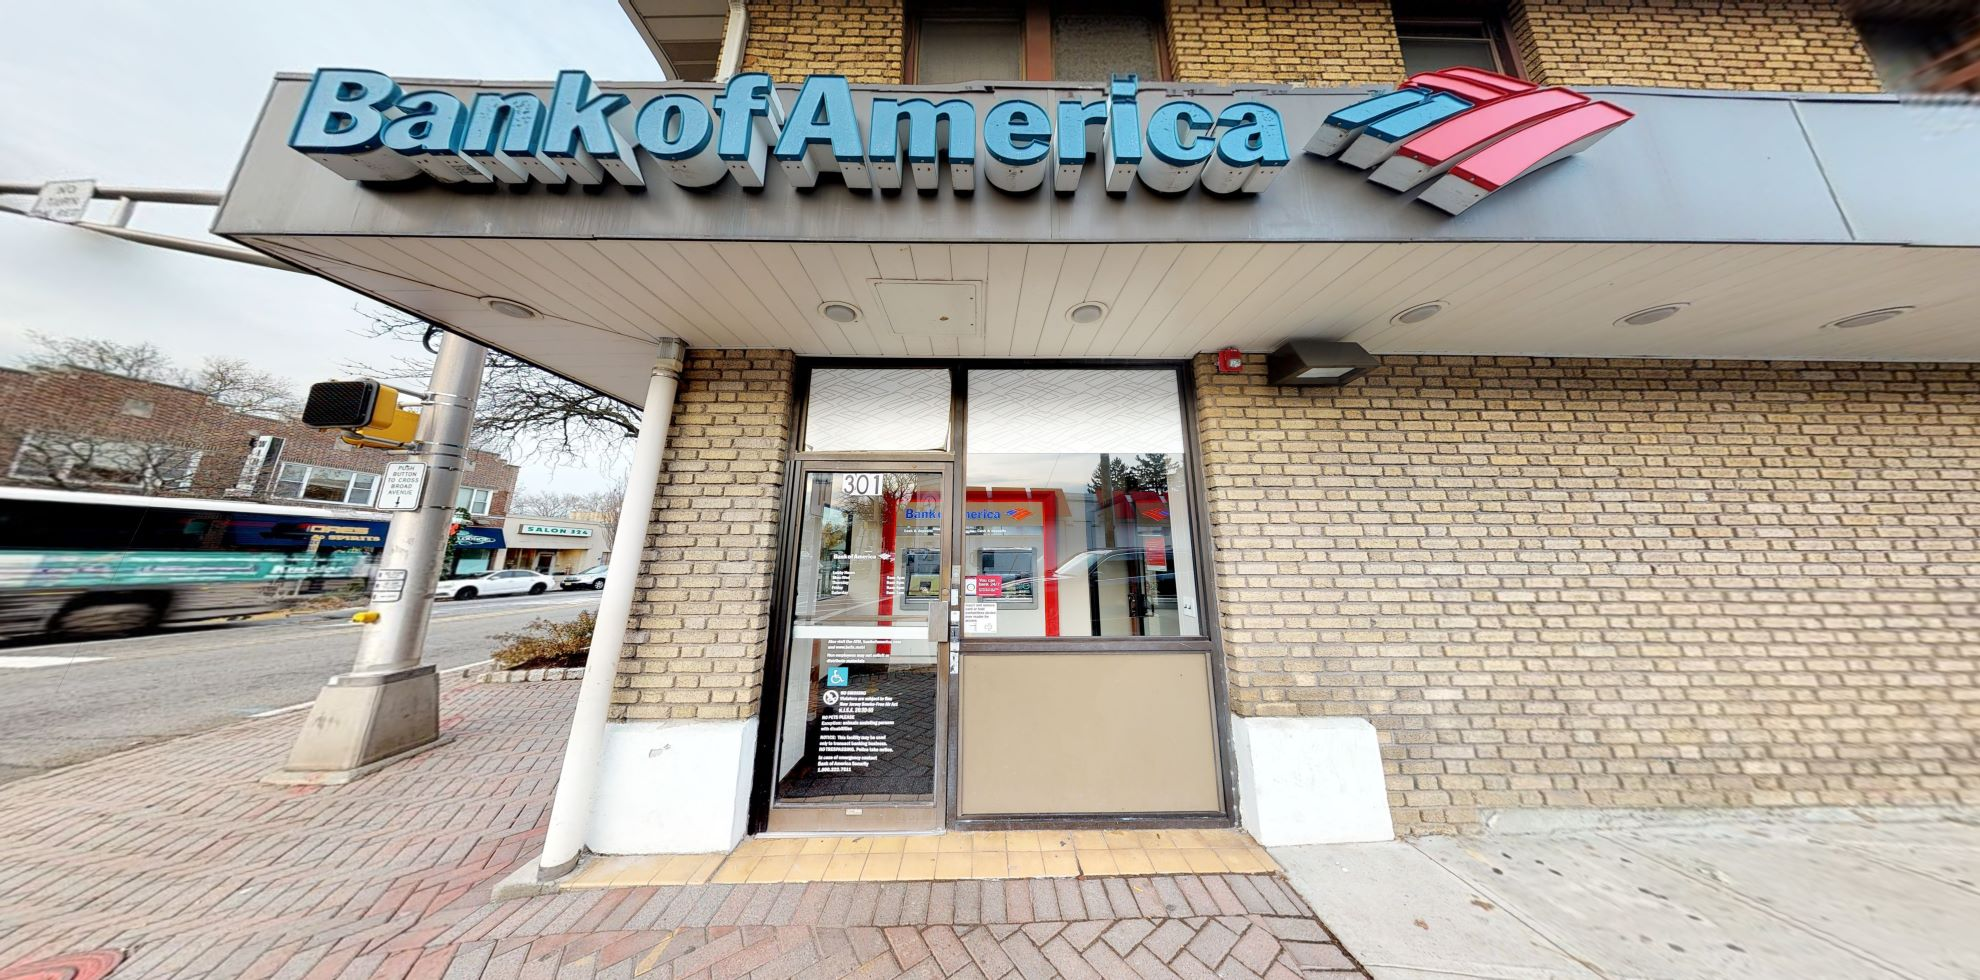 Bank of America financial center with walk-up ATM   301 Fort Lee Rd, Leonia, NJ 07605